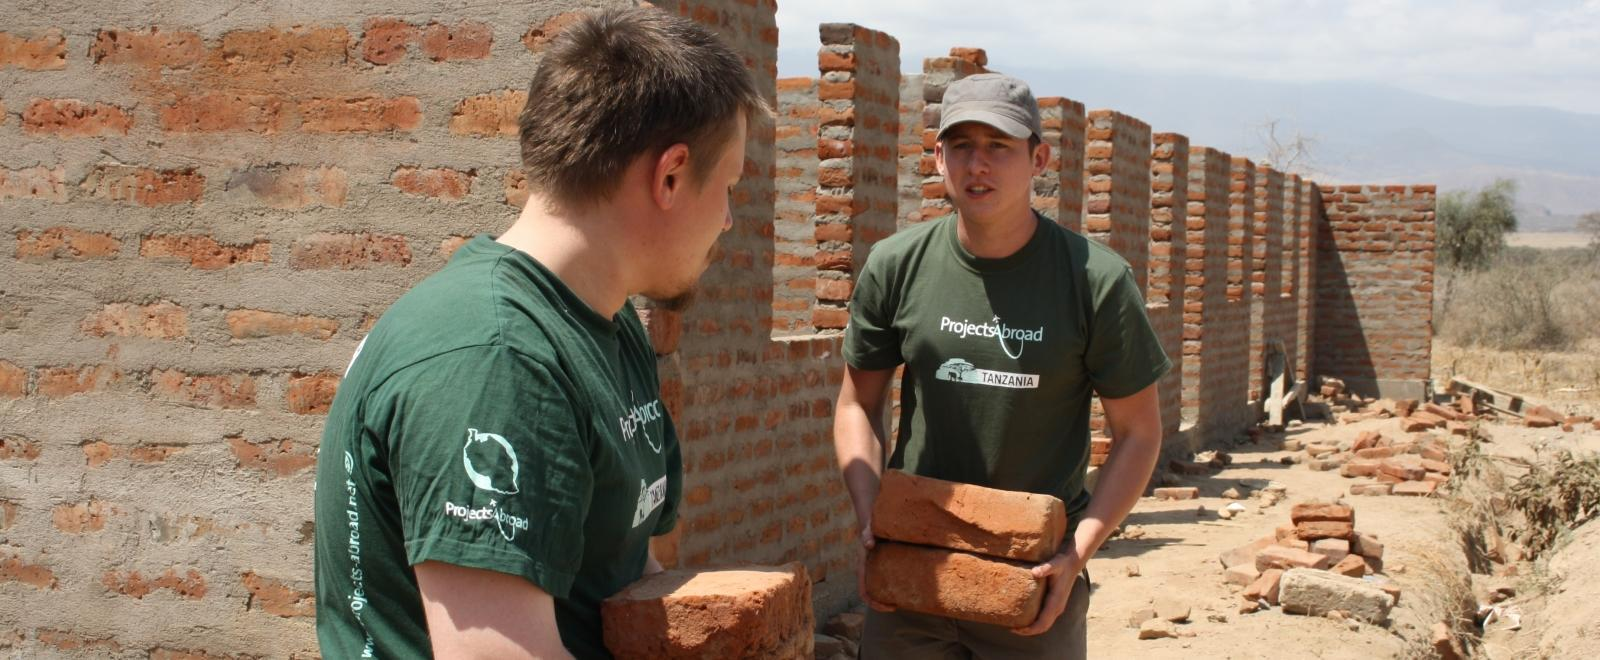 Teenage volunteers doing construction work in Tanzania carry bricks needed for a wall.